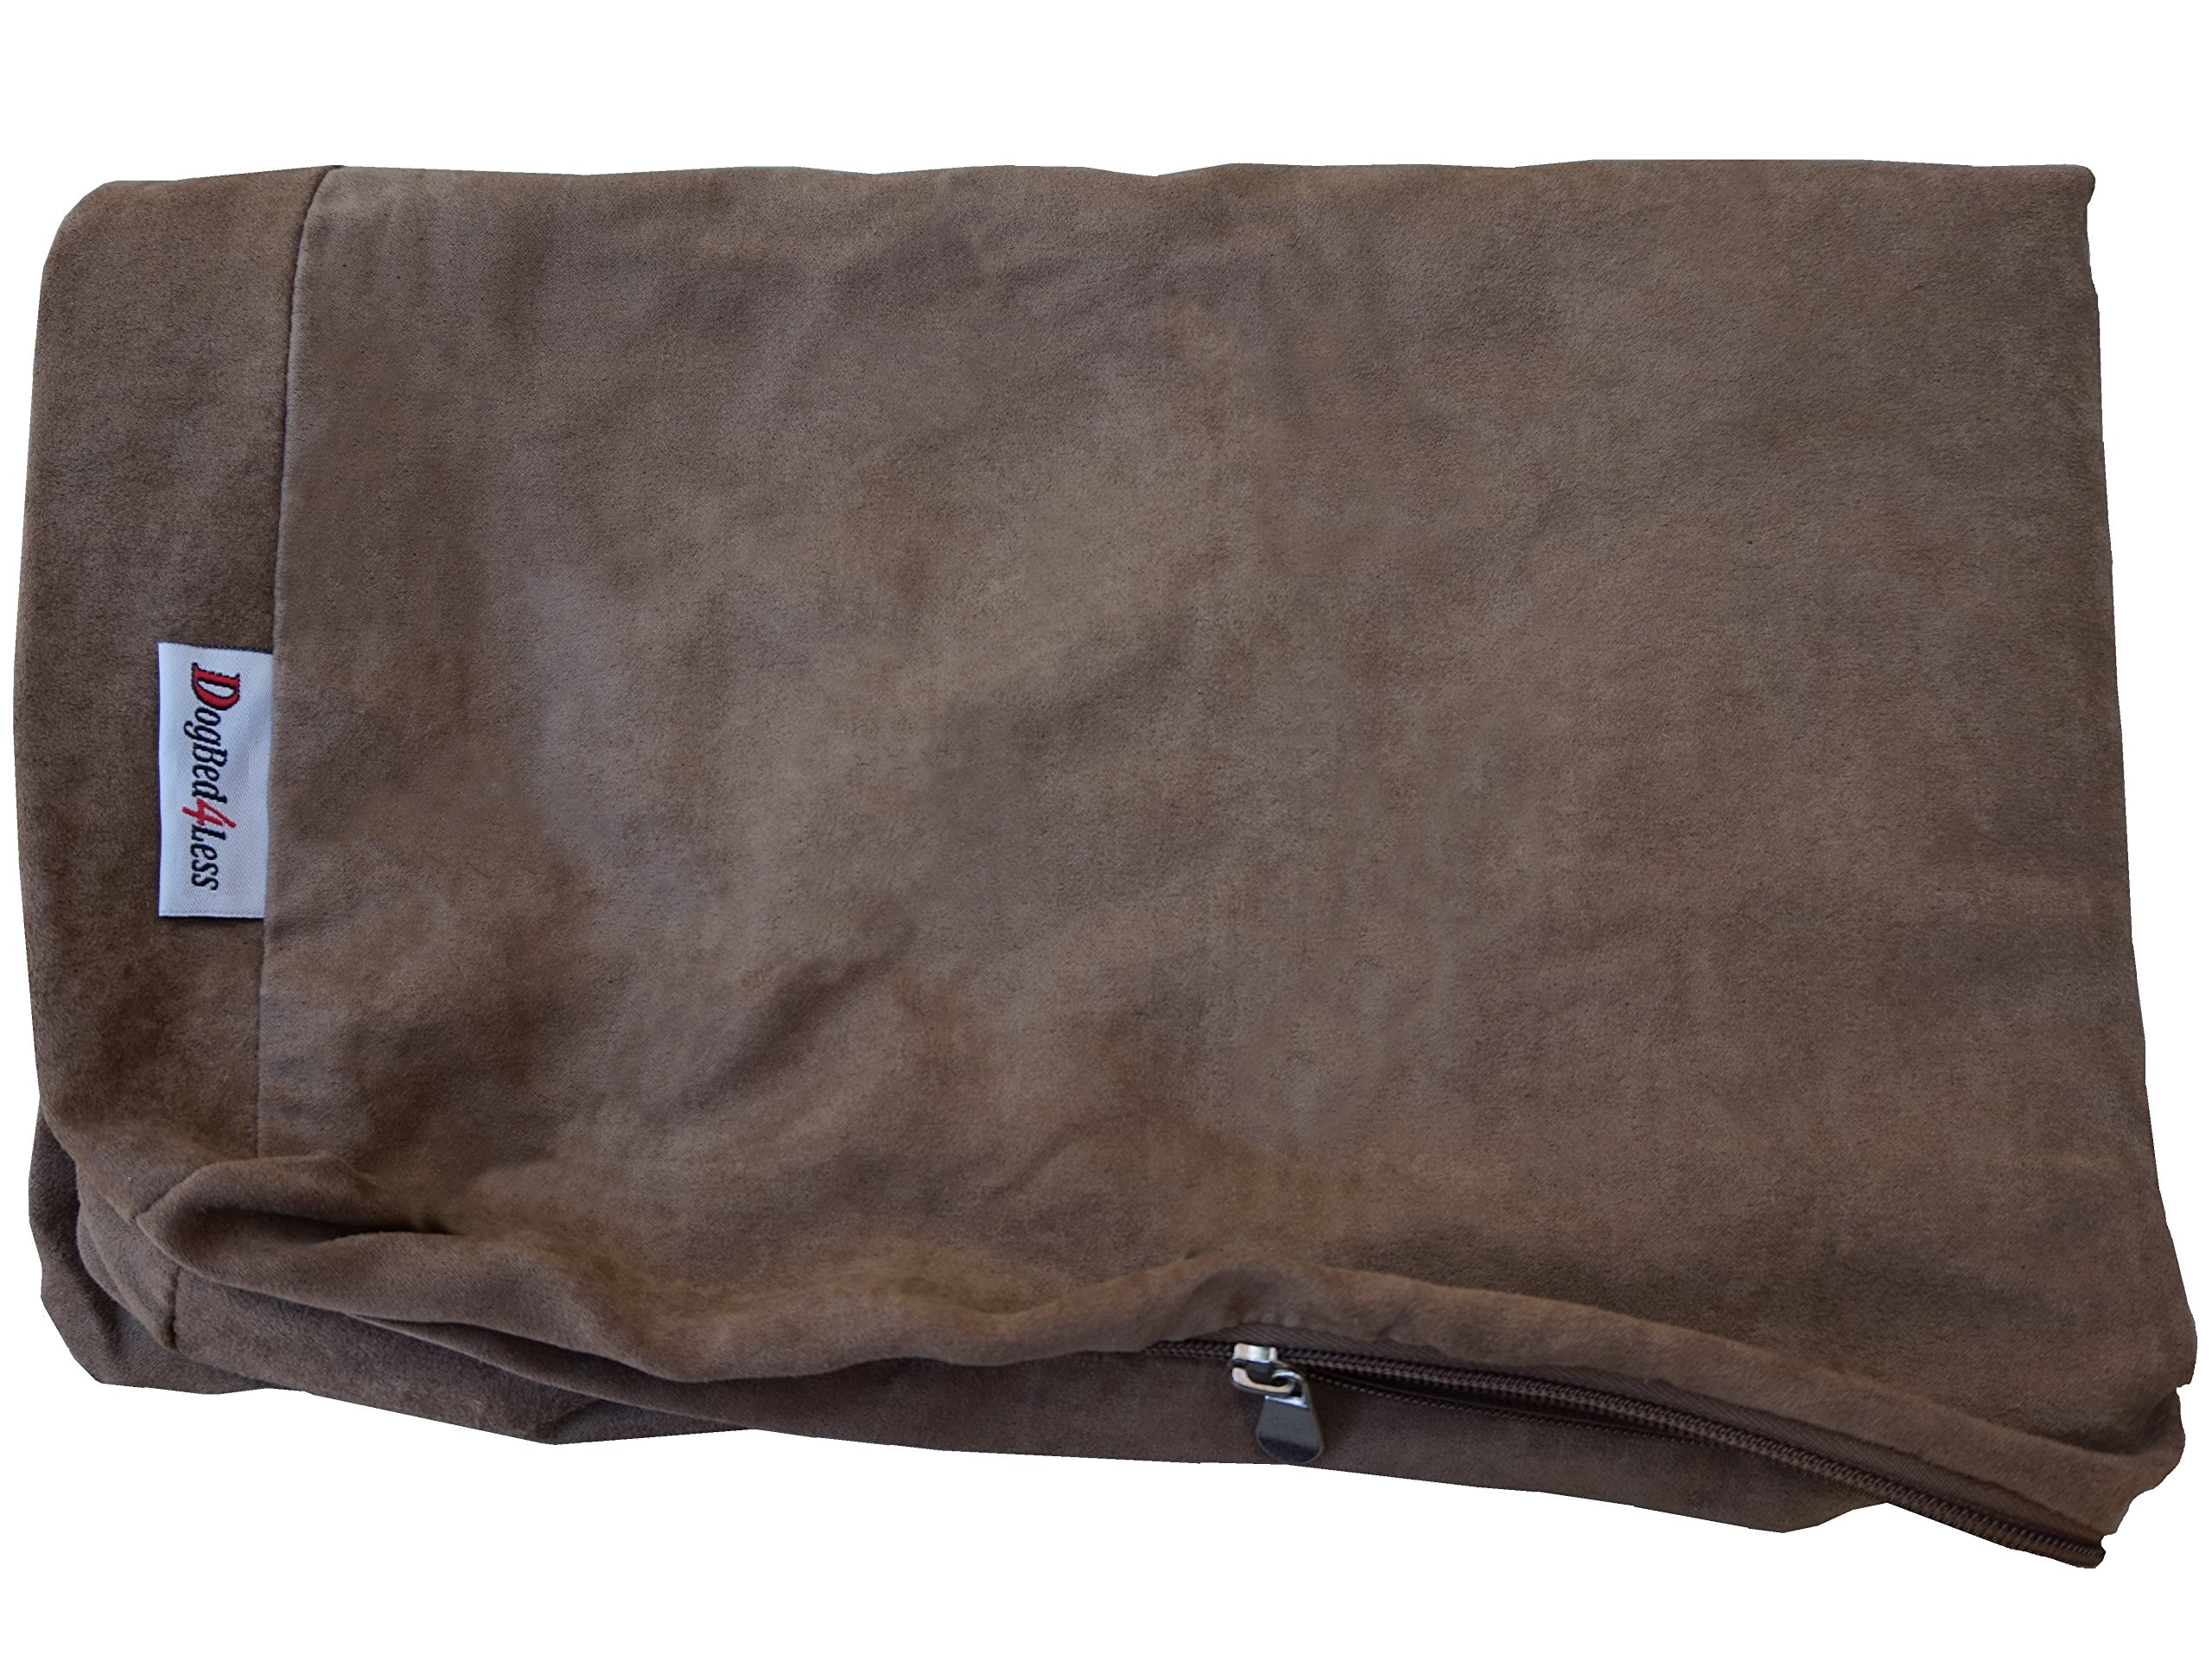 Dogbed4less External Pet Bed Cover with Zipper Liner for Extra Large Dog, 55''X47''x4'' Jumbo, Brown - Replacement Cover Only